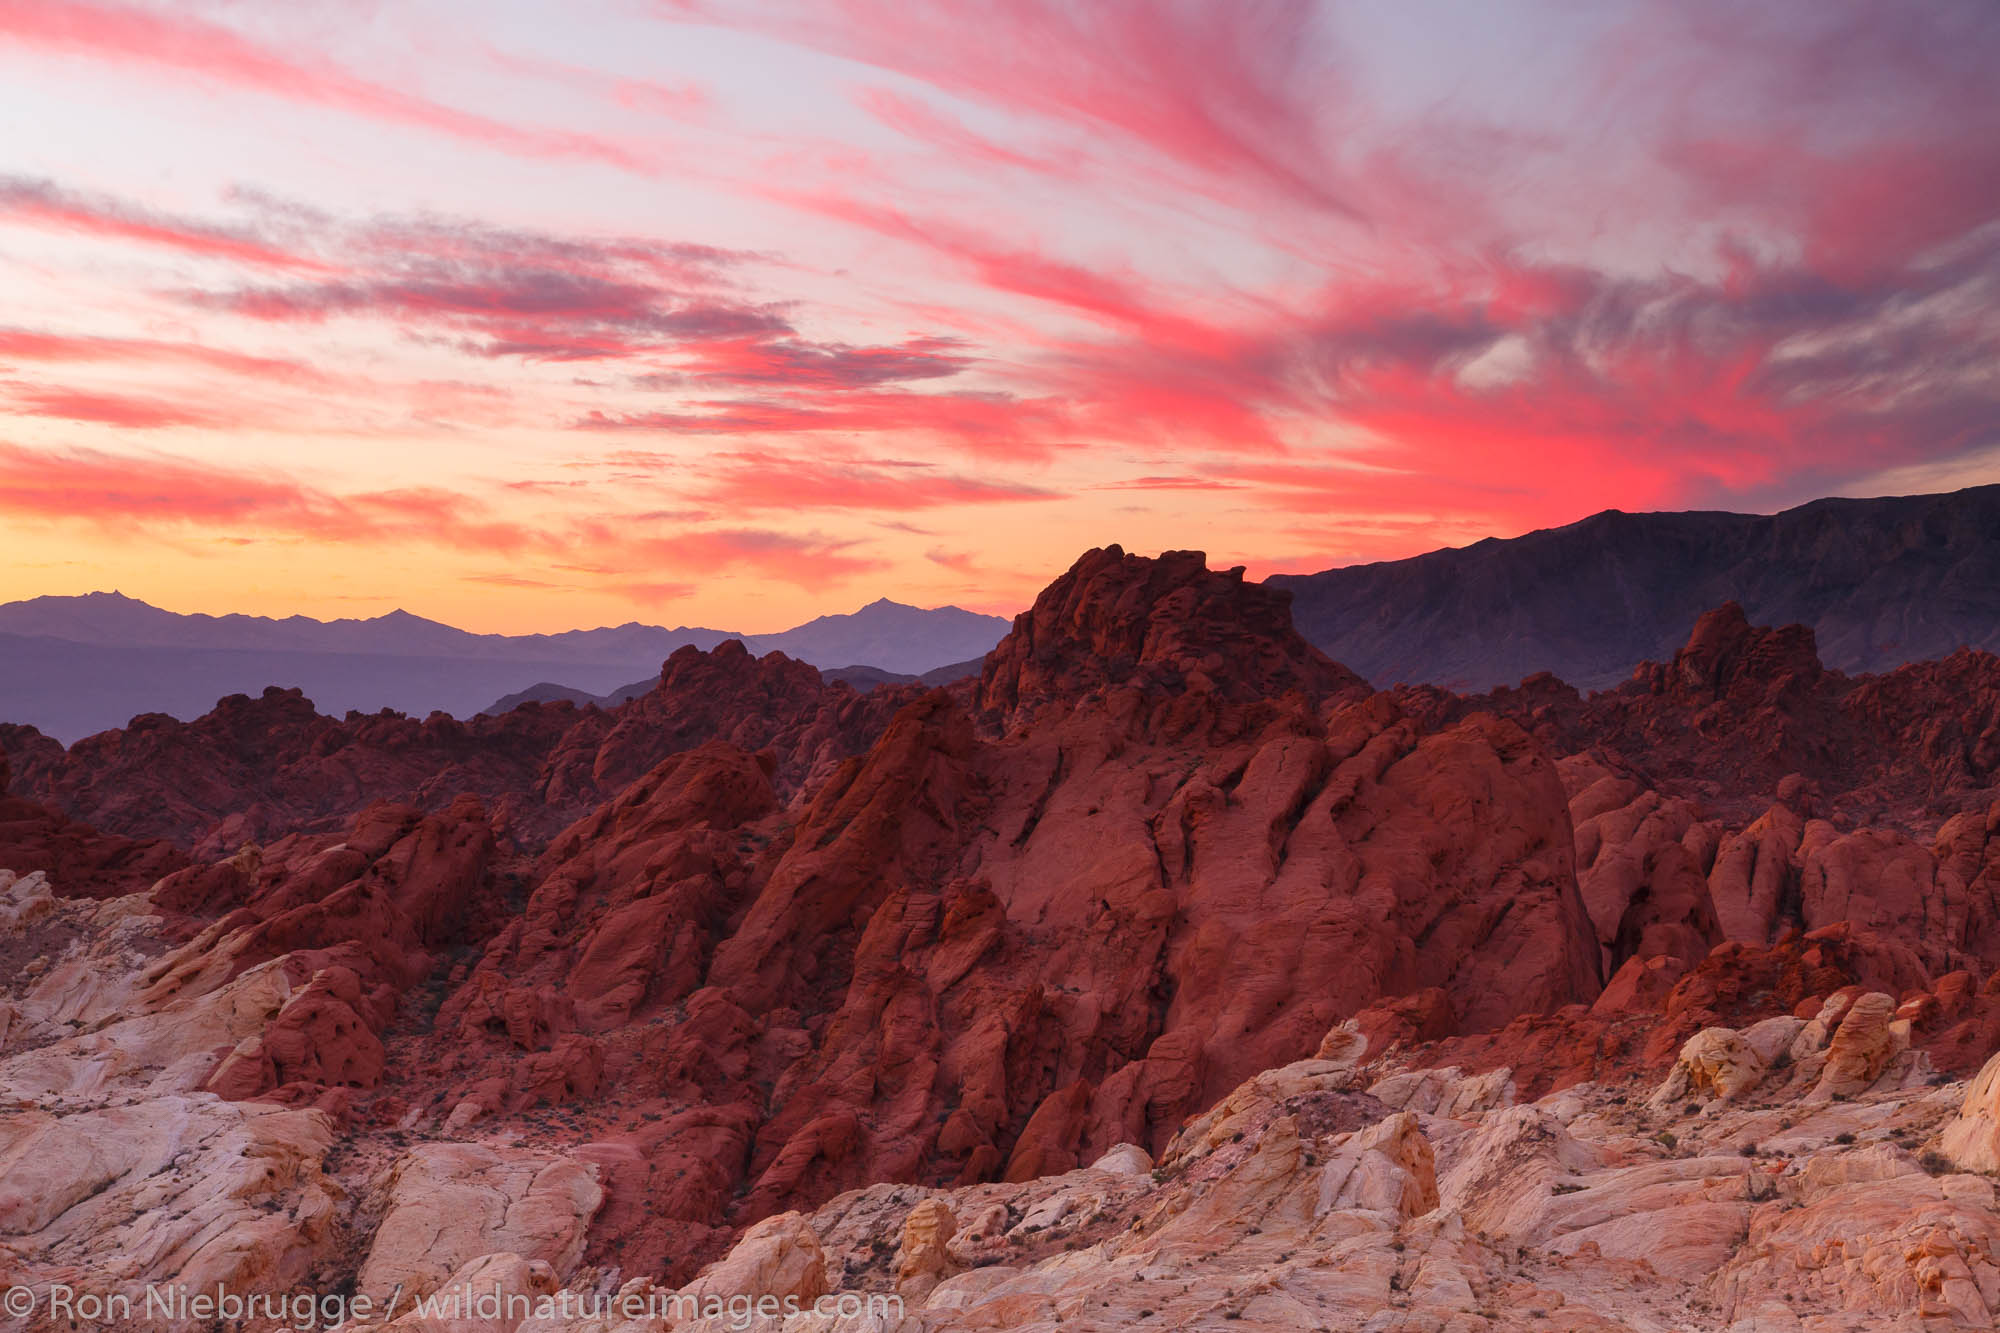 Sunrise over Silica Dome-Fire Canyon, Valley of Fire State Park, near Las Vegas, Nevada.